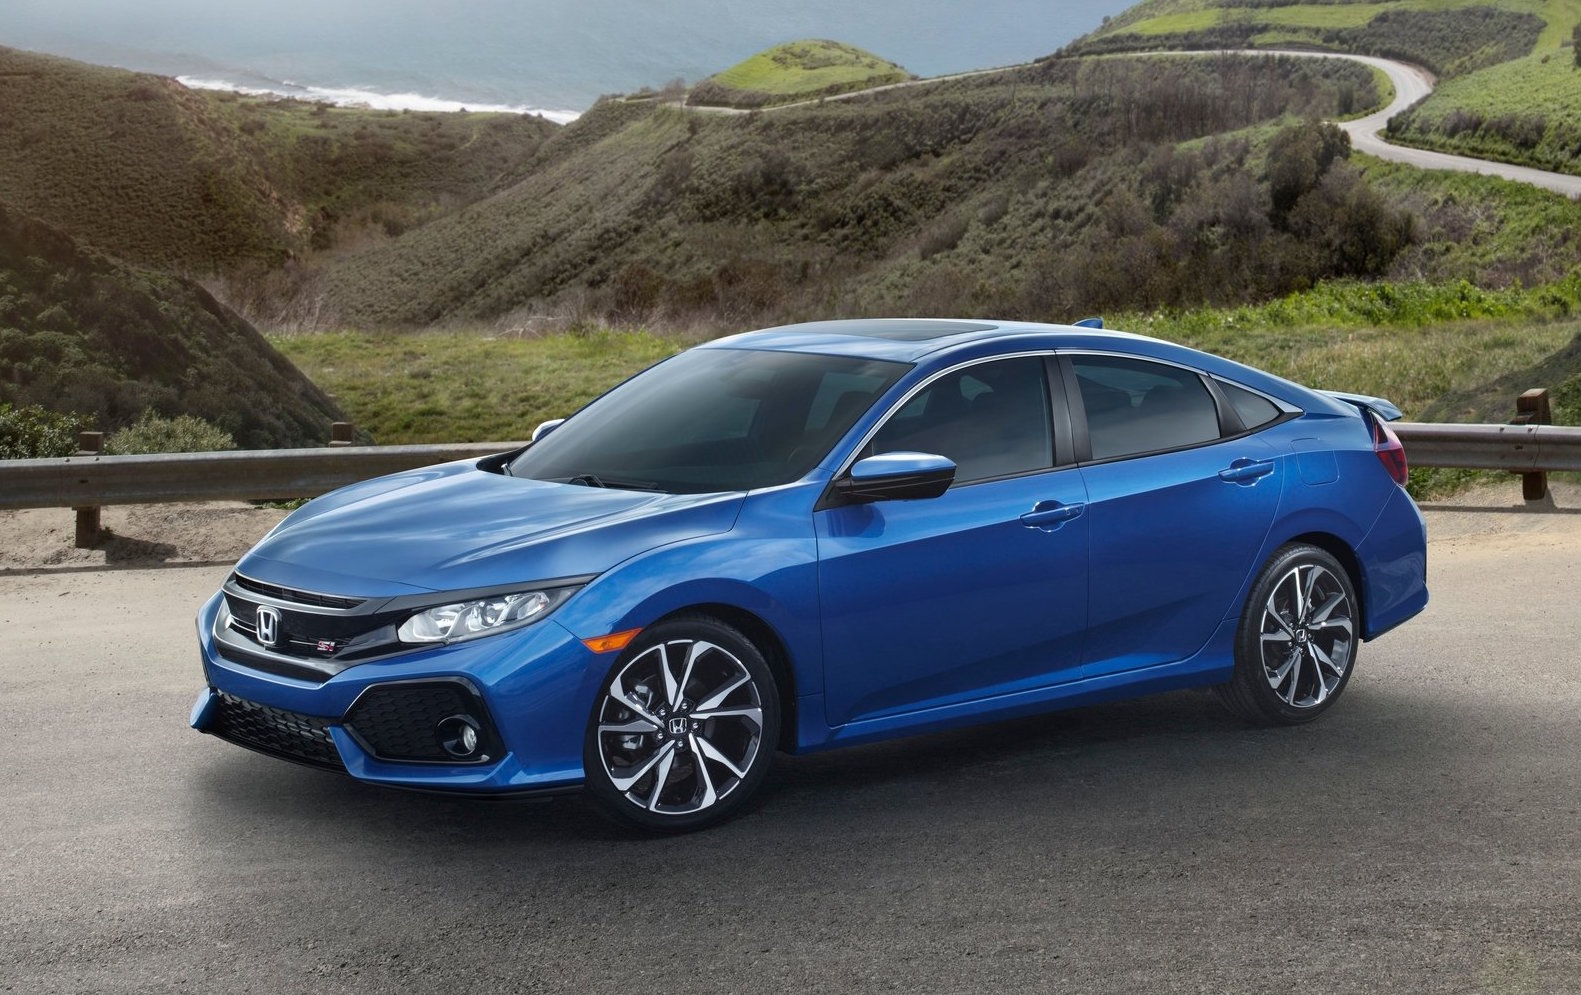 New Civic 2017 2018 Honda Civic Si Announced Gets 150kw Tune 1 5t